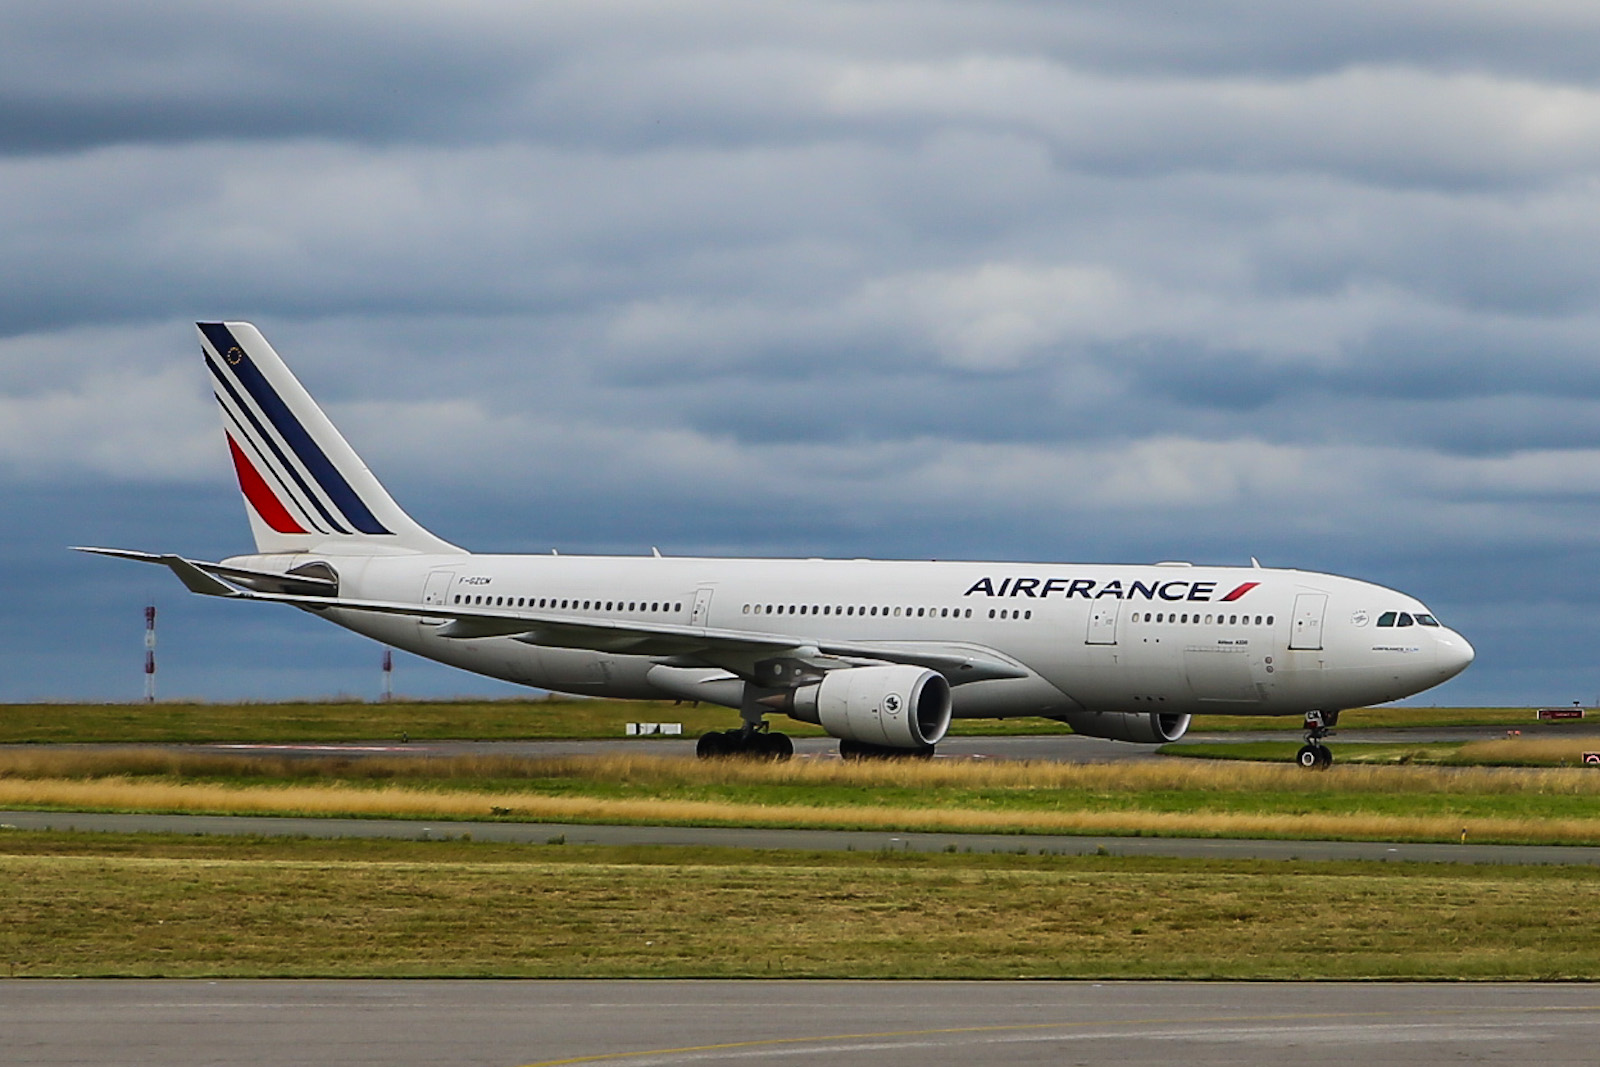 Airbus A330-200 Air France at Paris Charles-de-Gaulle